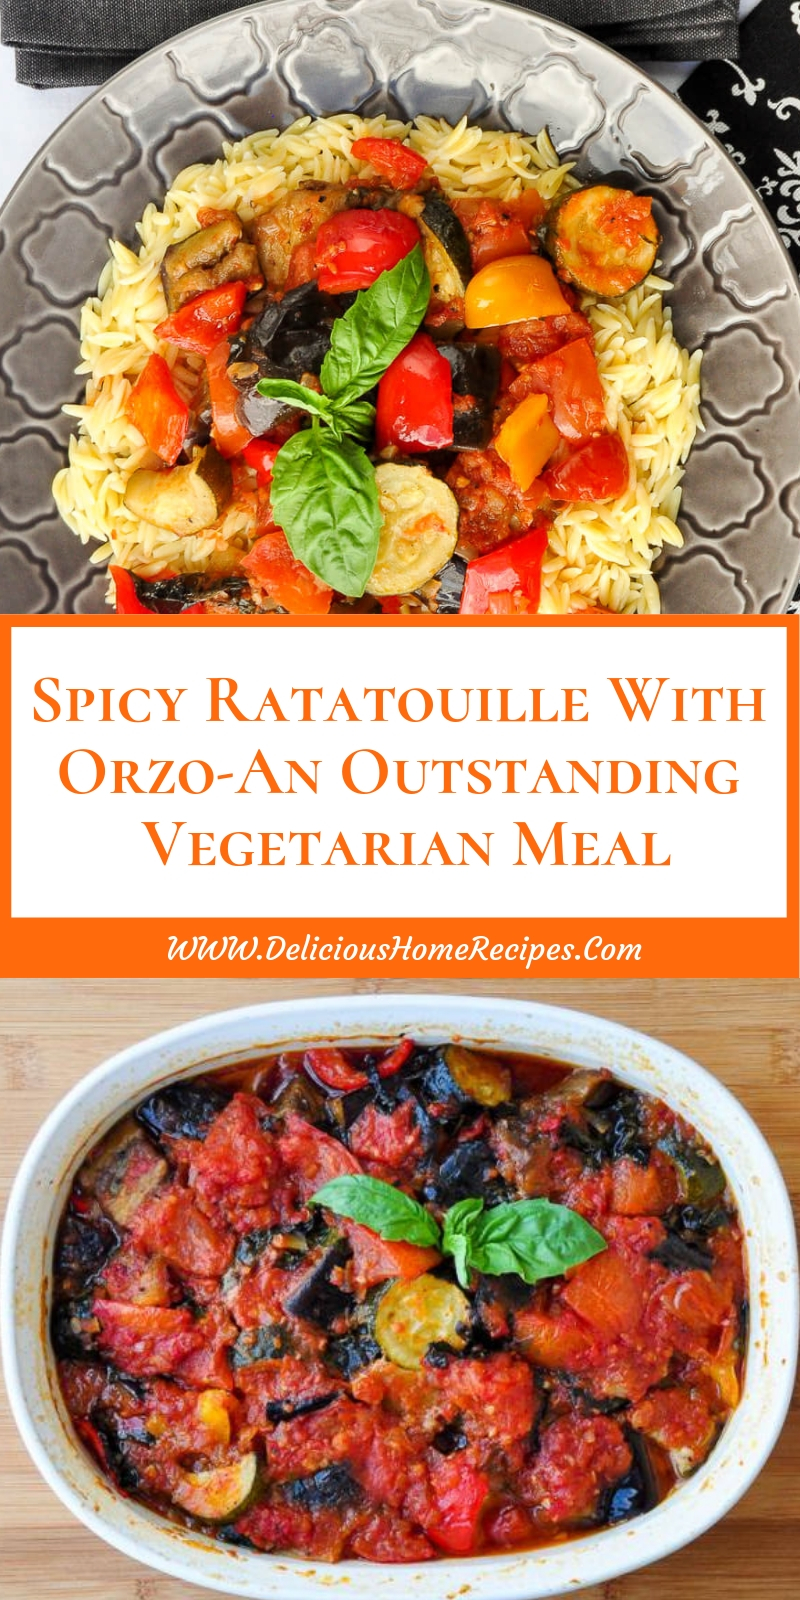 Spicy Ratatouille With Orzo-An Outstanding Vegetarian Meal